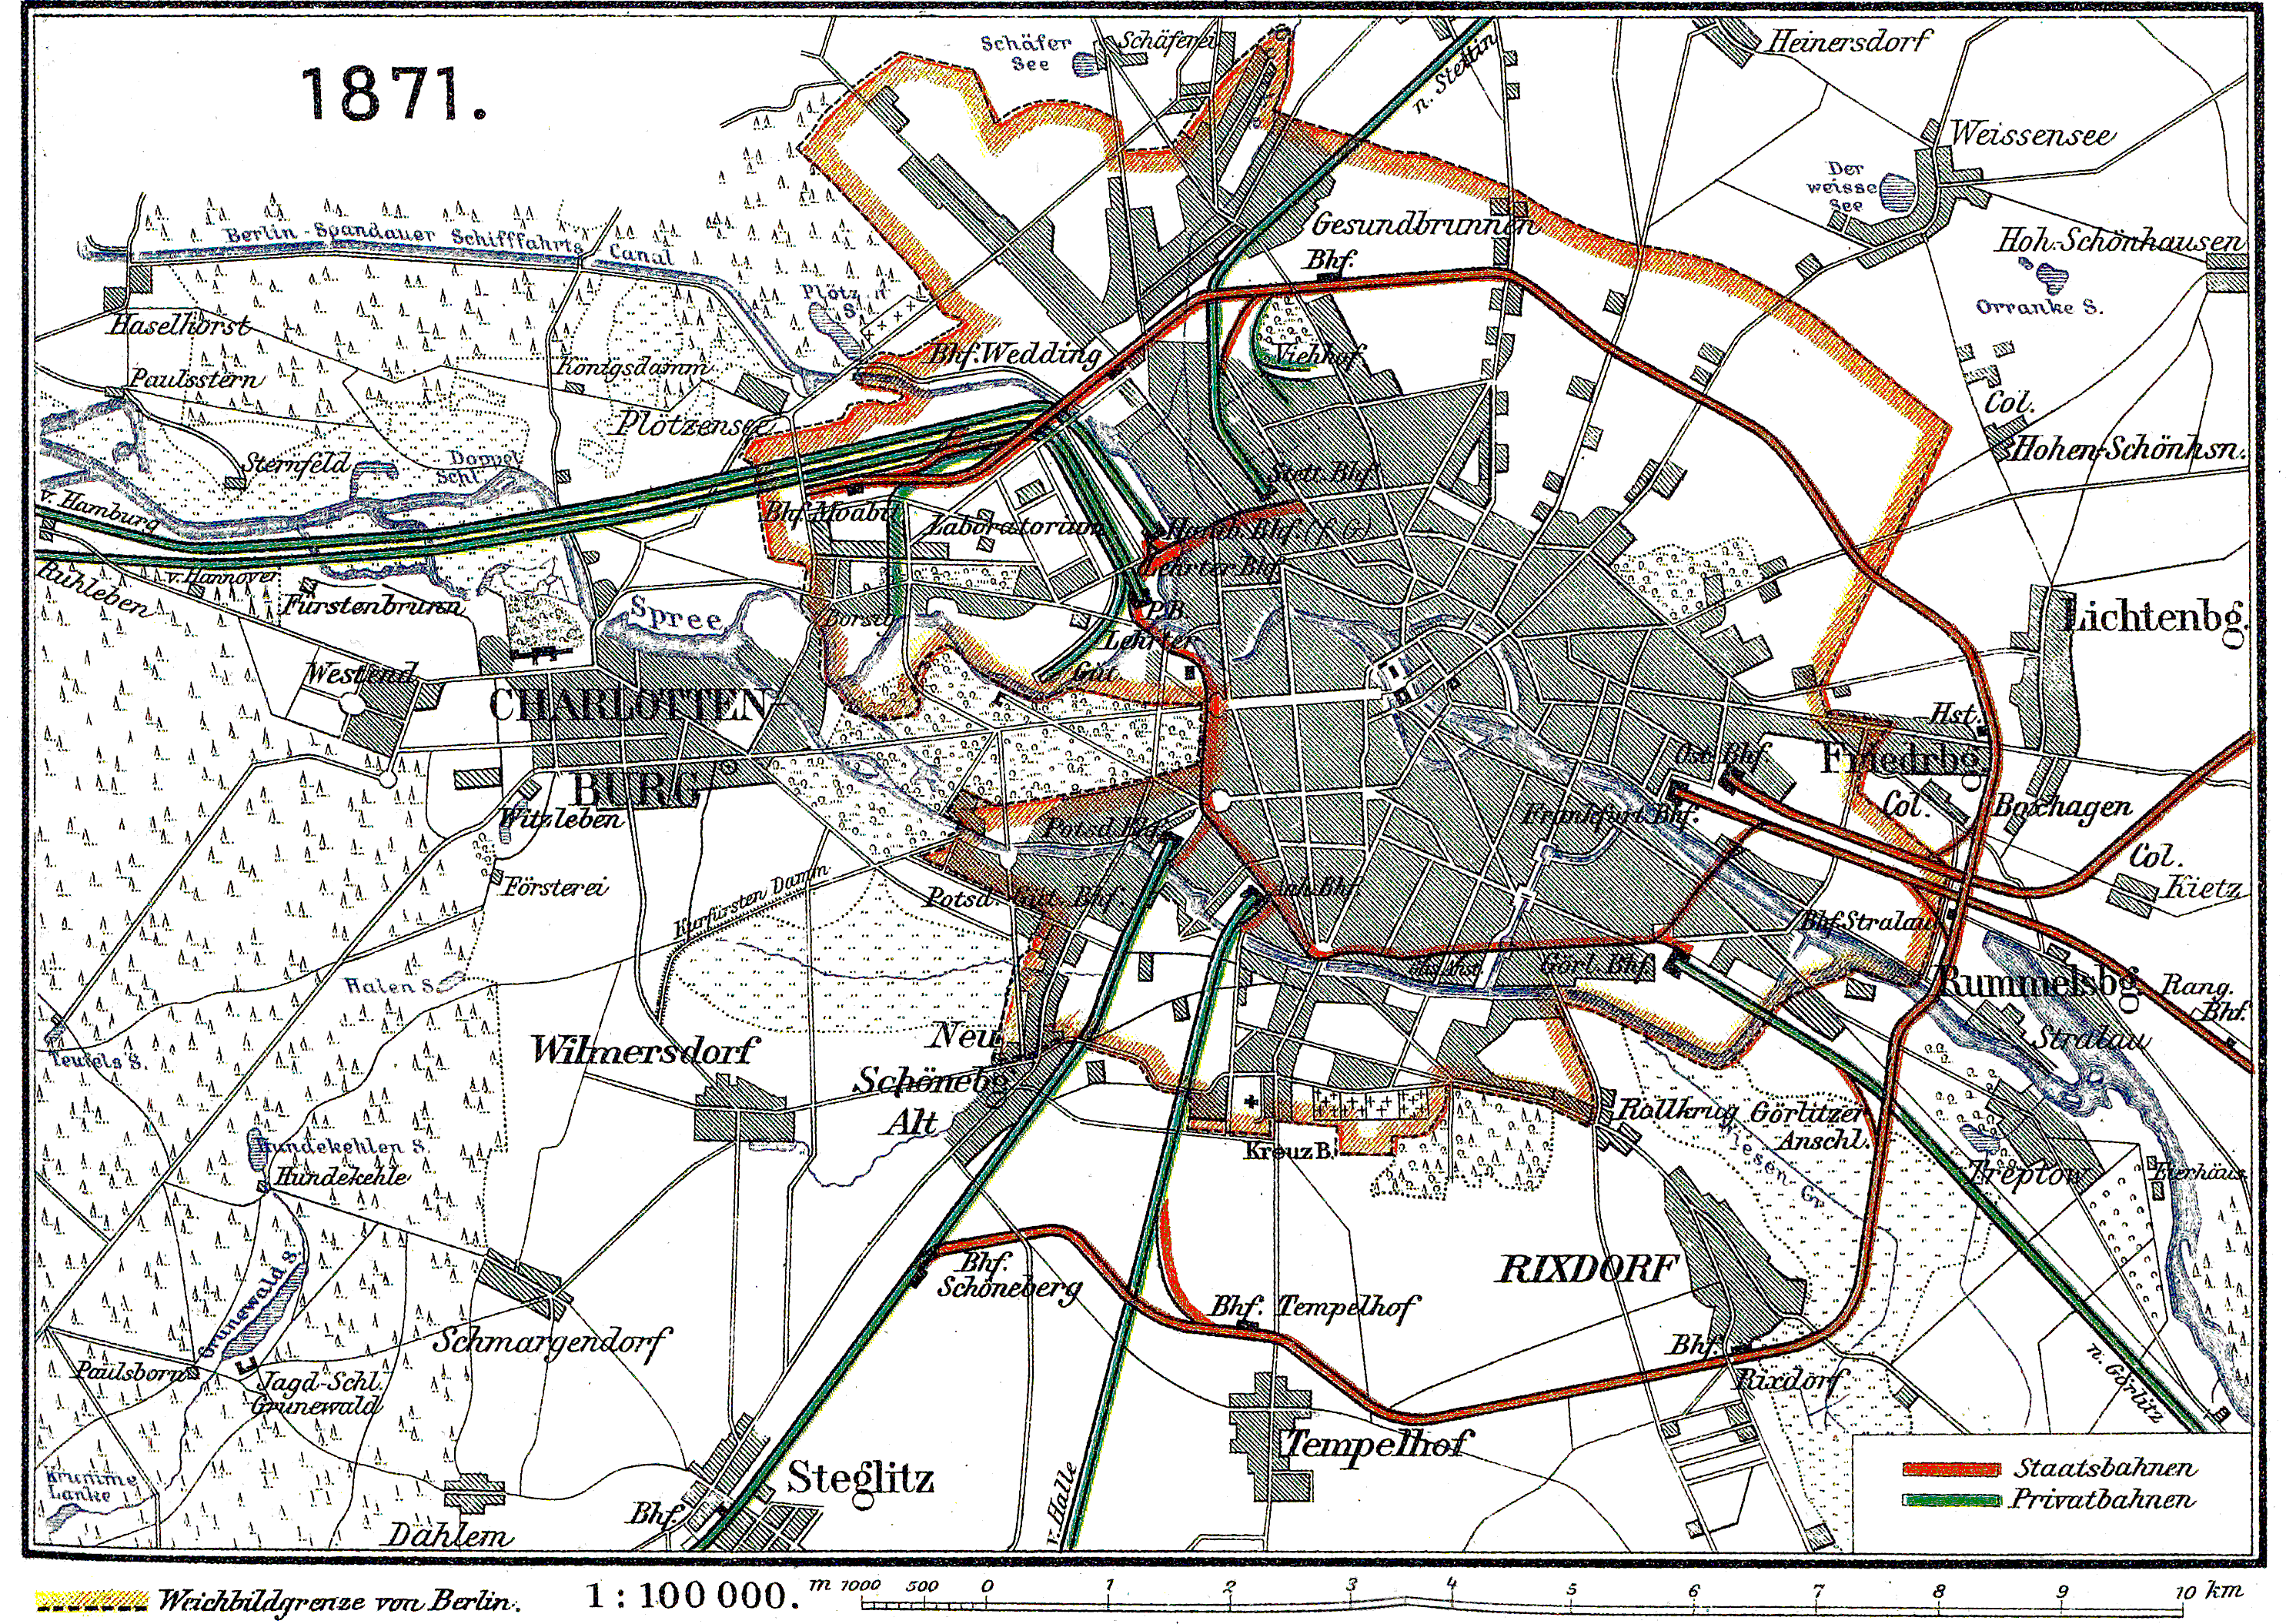 Berlin and its railways in 1871